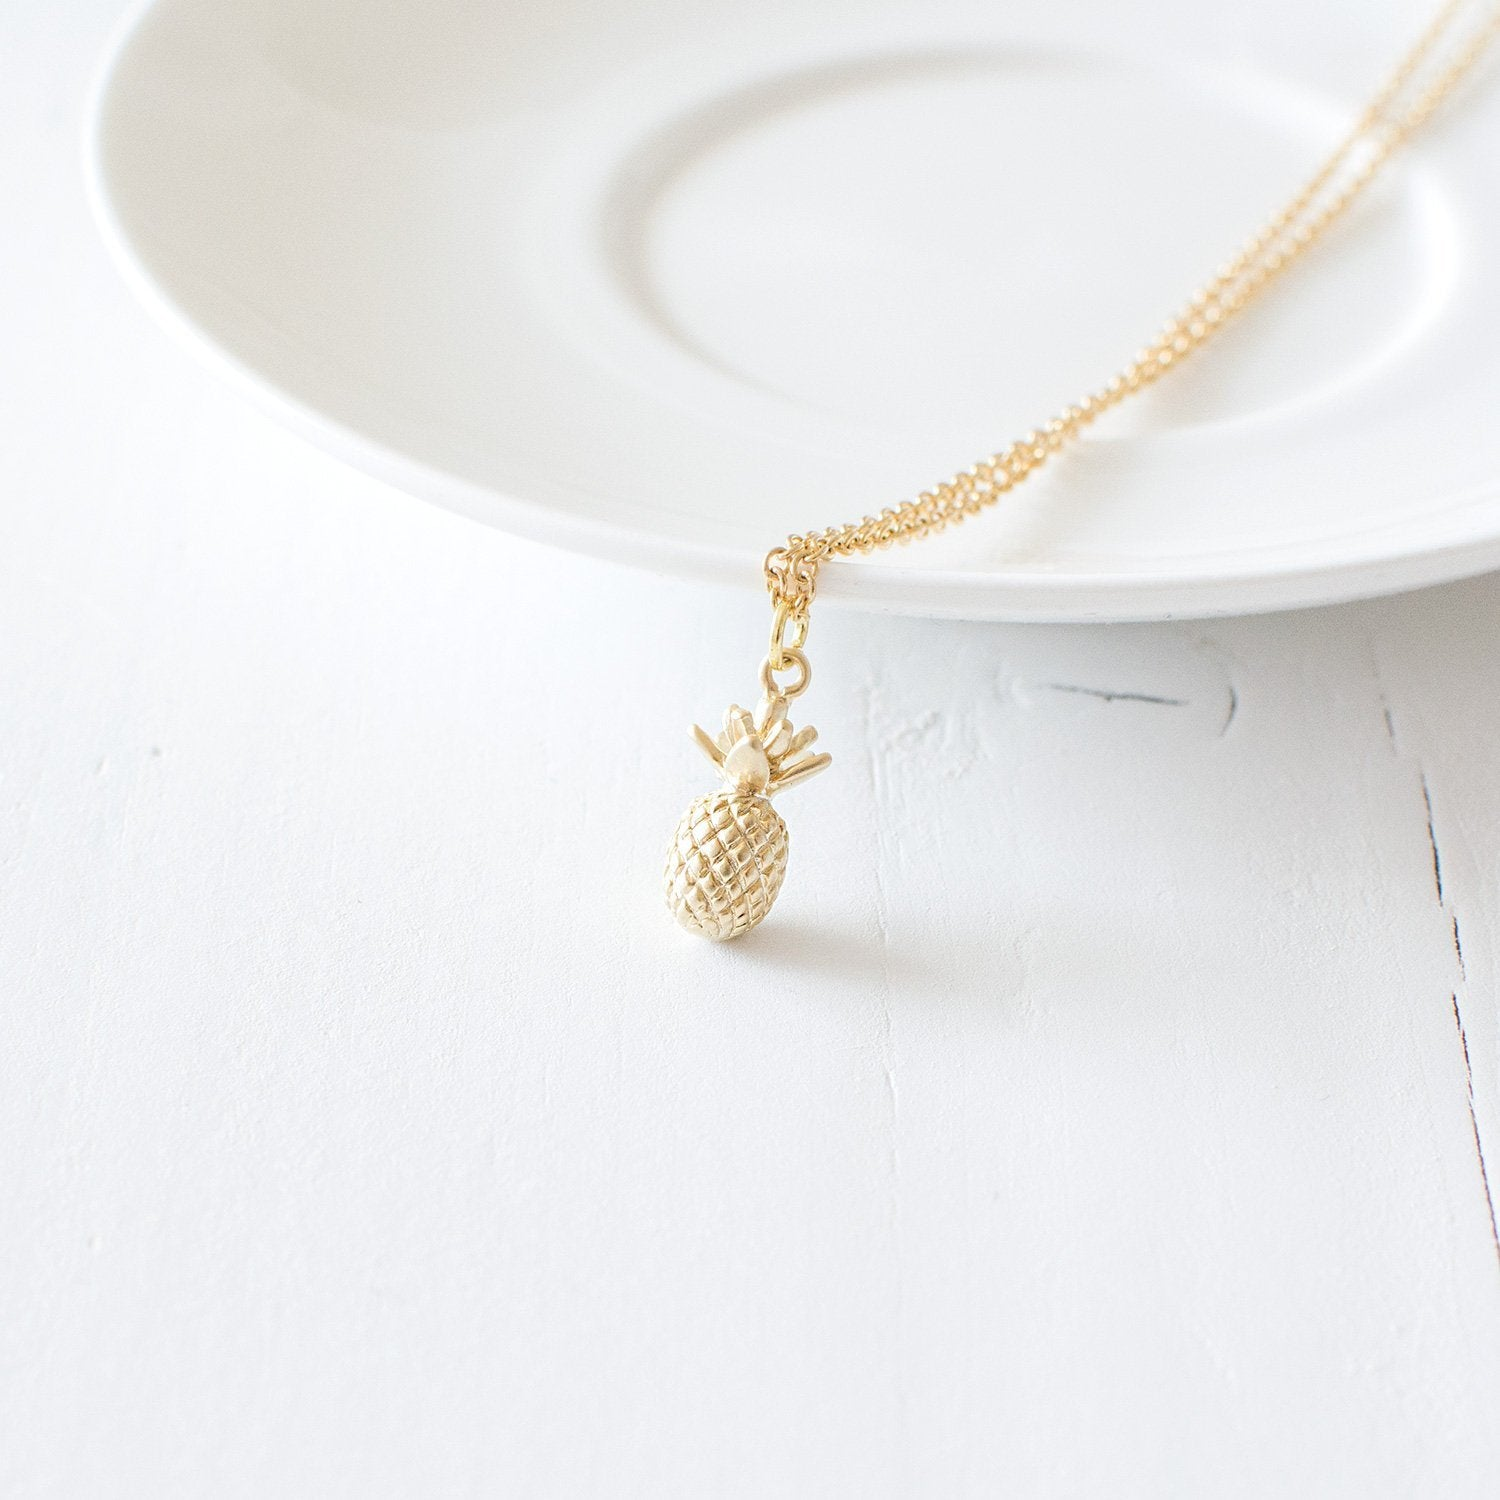 Gold Pineapple Pendant Necklace